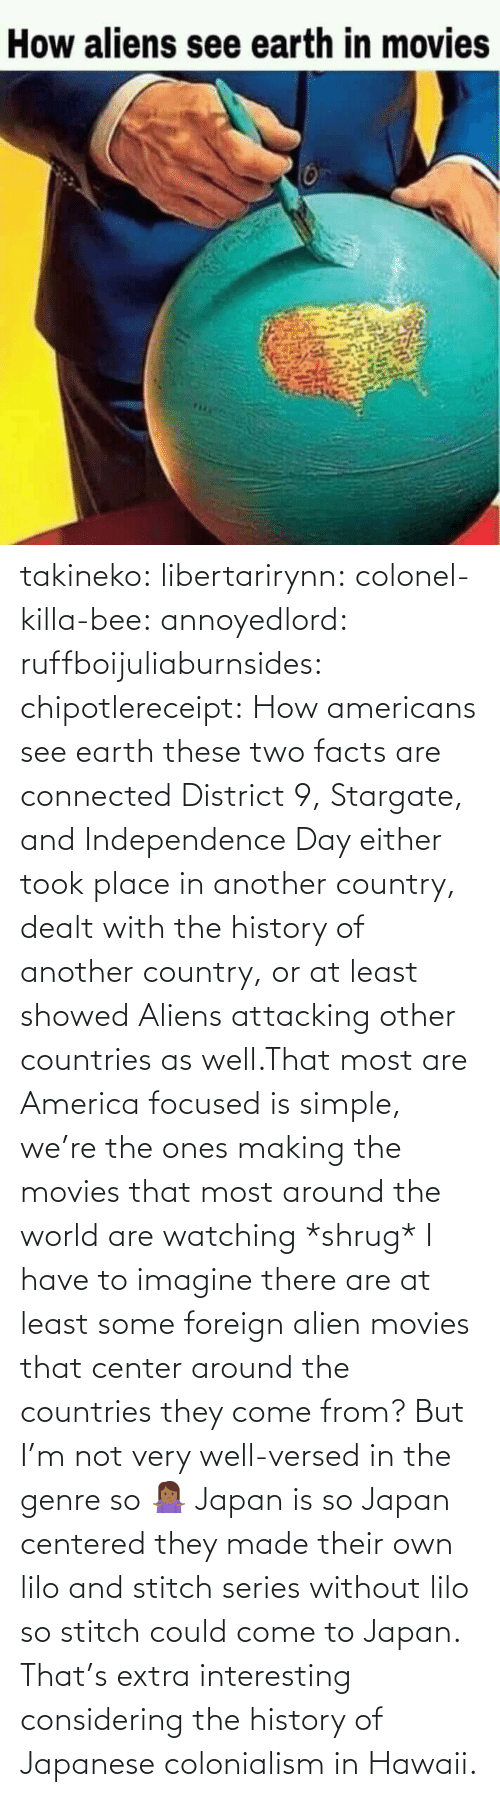 come: takineko:  libertarirynn:  colonel-killa-bee:  annoyedlord: ruffboijuliaburnsides:  chipotlereceipt: How americans see earth these two facts are connected     District 9, Stargate, and Independence Day either took place in another country, dealt with the history of another country, or at least showed Aliens attacking other countries as well.That most are America focused is simple, we're the ones making the movies that most around the world are watching *shrug*   I have to imagine there are at least some foreign alien movies that center around the countries they come from? But I'm not very well-versed in the genre so 🤷🏾‍♀️   Japan is so Japan centered they made their own lilo and stitch series without lilo so stitch could come to Japan.    That's extra interesting considering the history of Japanese colonialism in Hawaii.